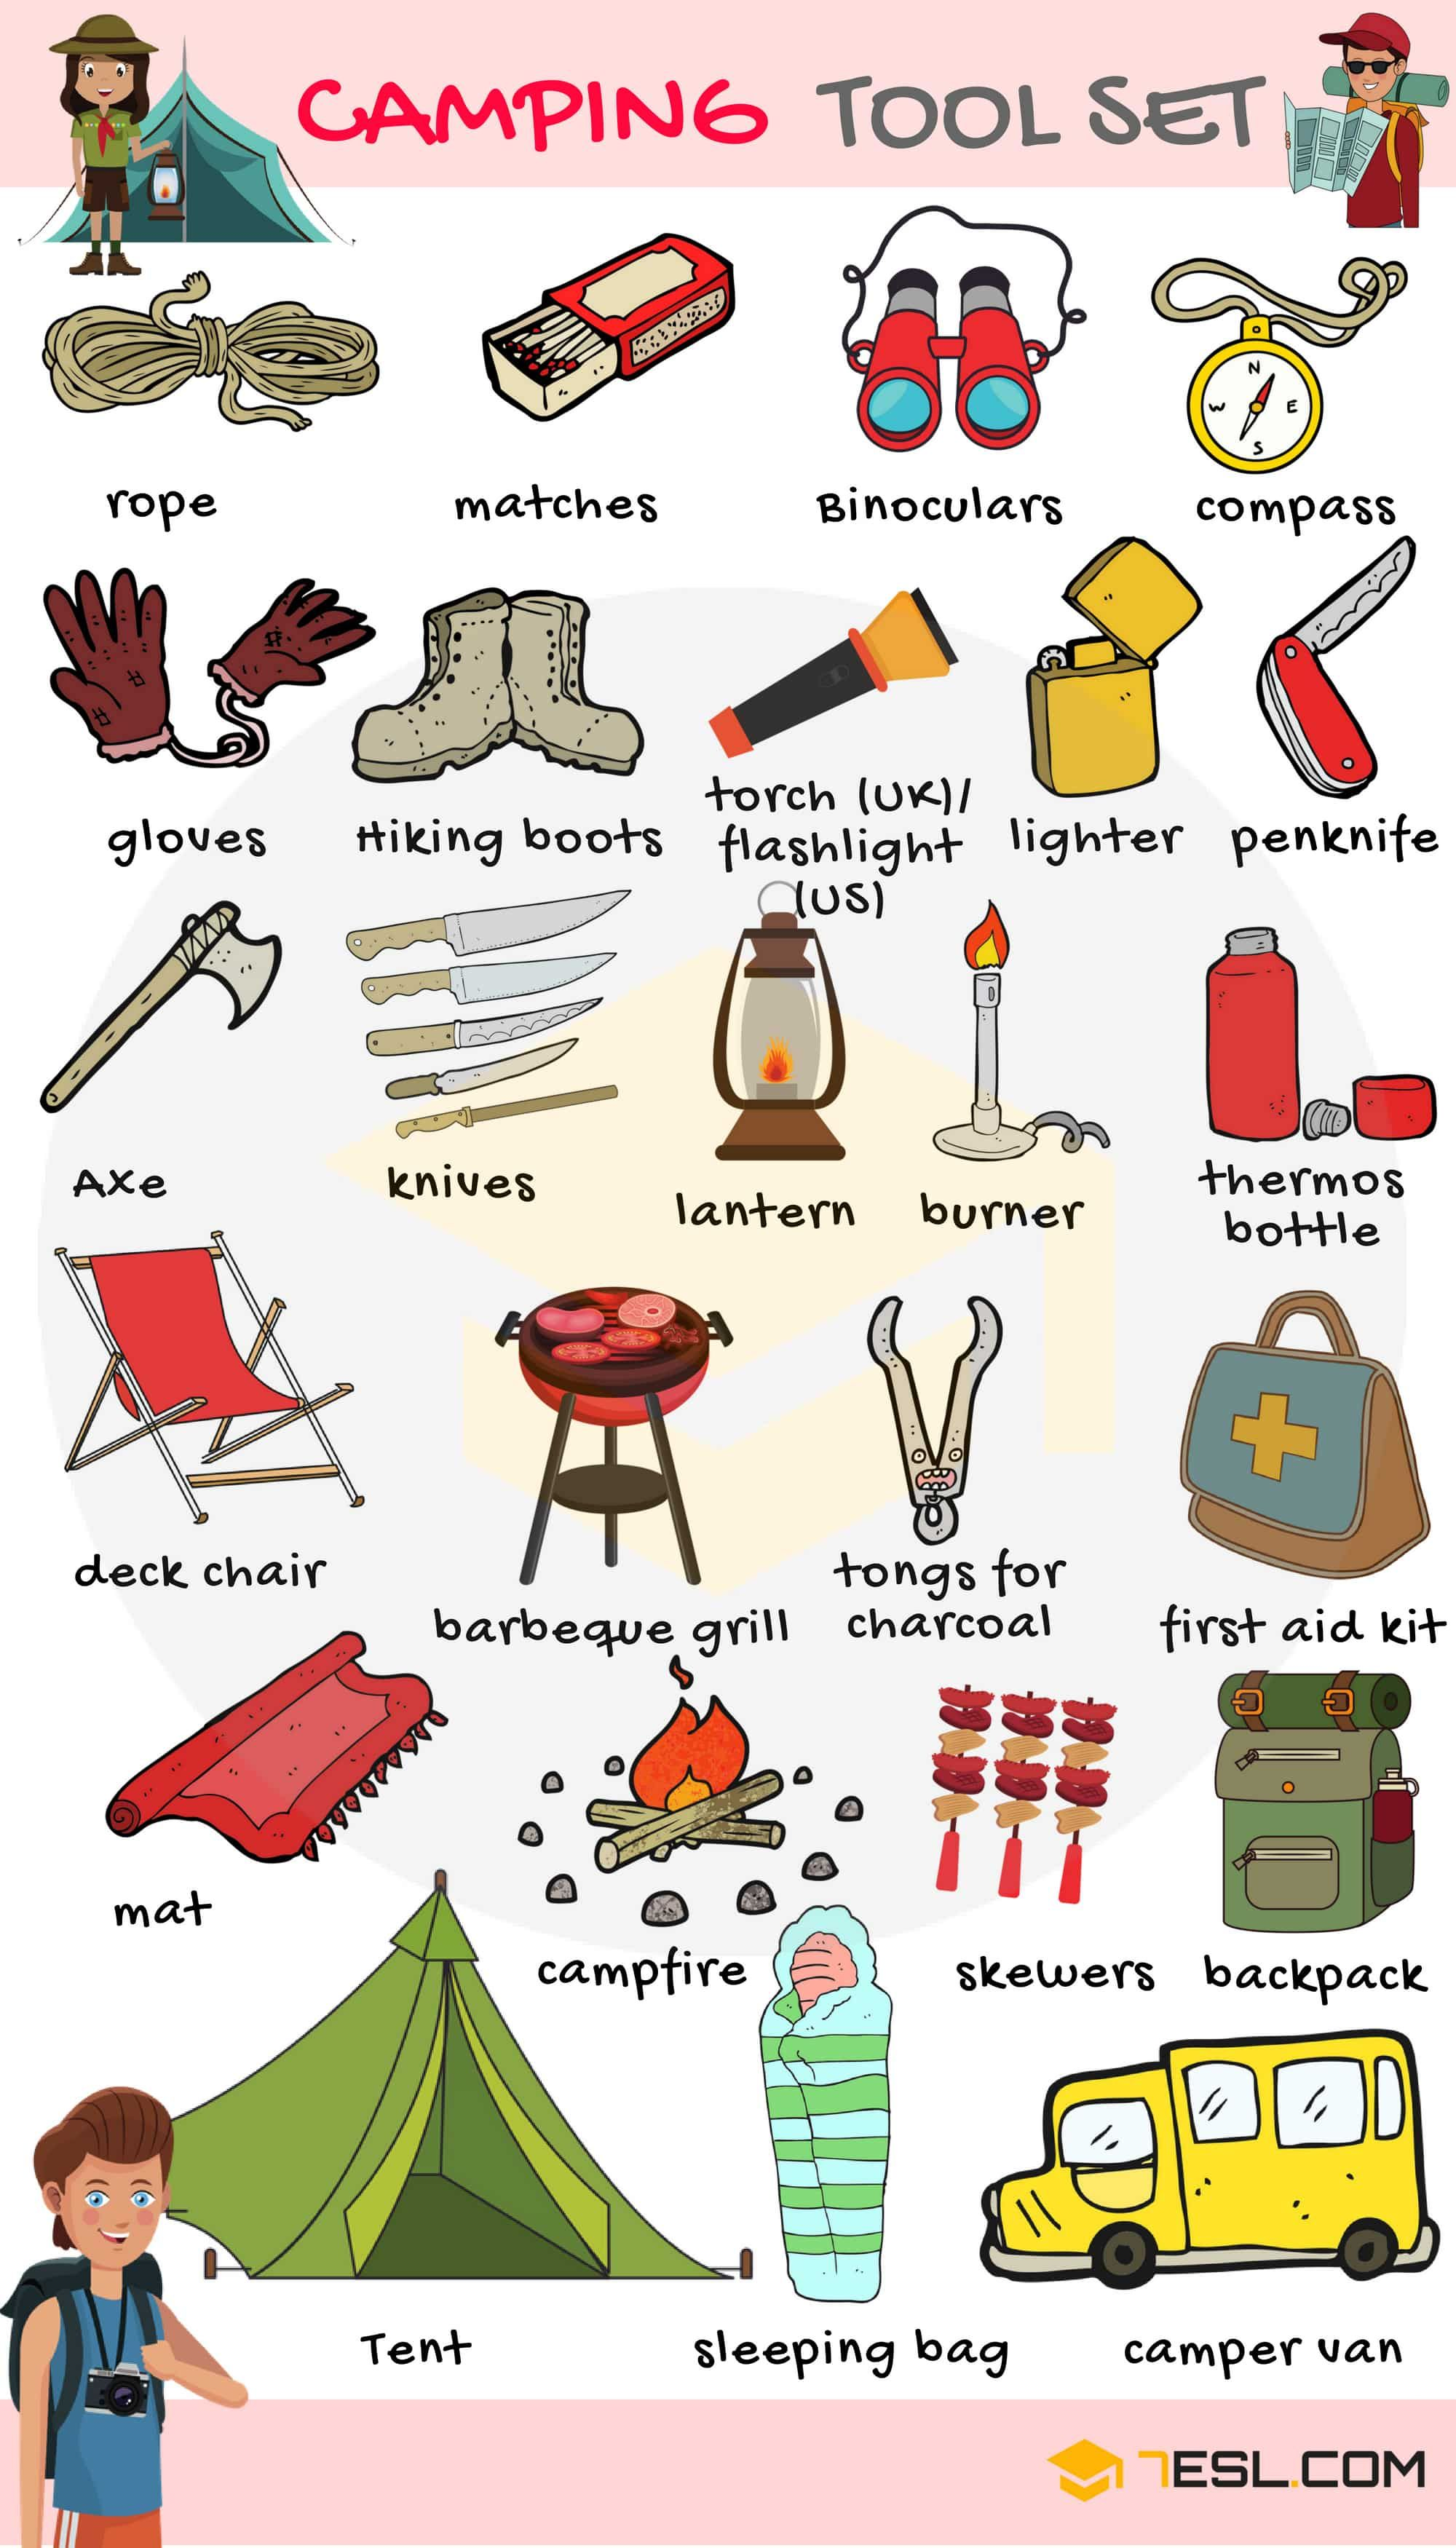 Camping Checklist: Useful Camping List with Pictures | Camping with kids,  Camping, Things to do camping